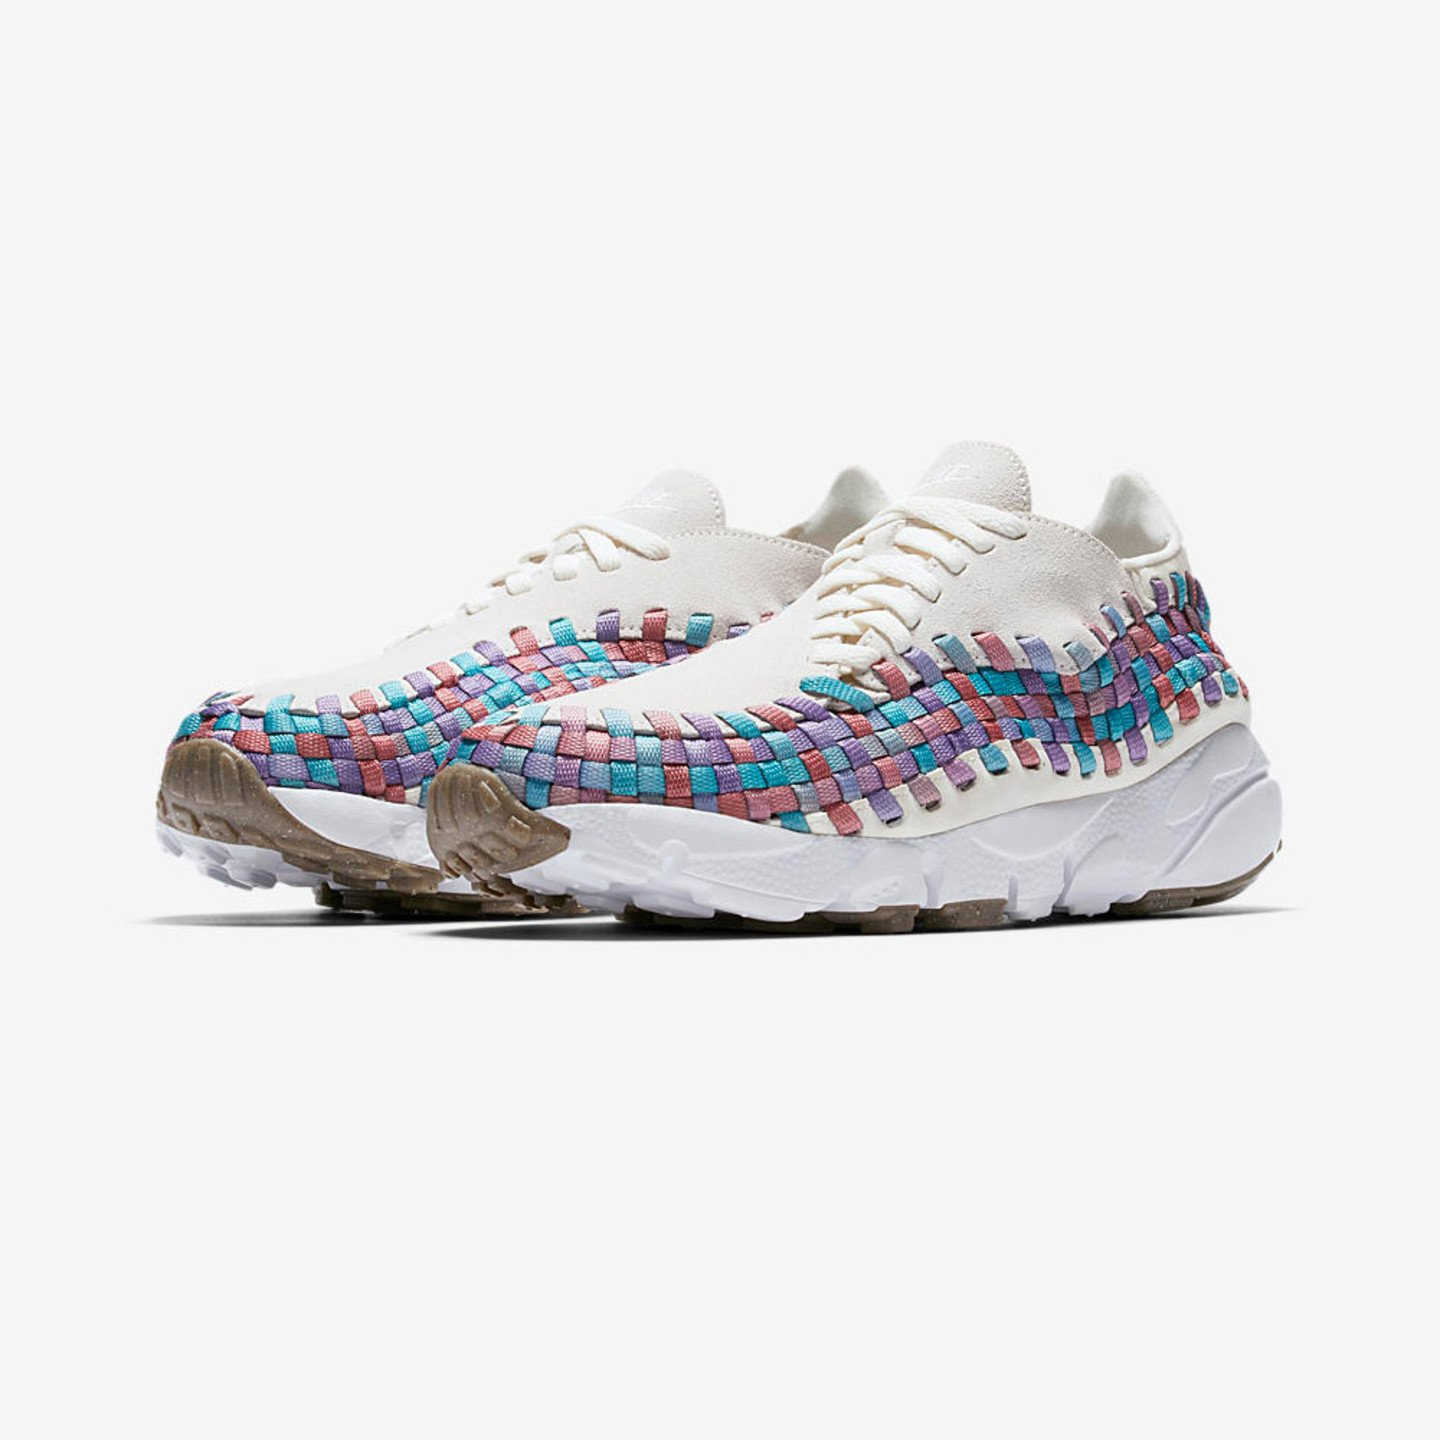 Nike Wmns Air Footscape Woven 'Multicolor' Sail / White / Red / Stardust 917698-100